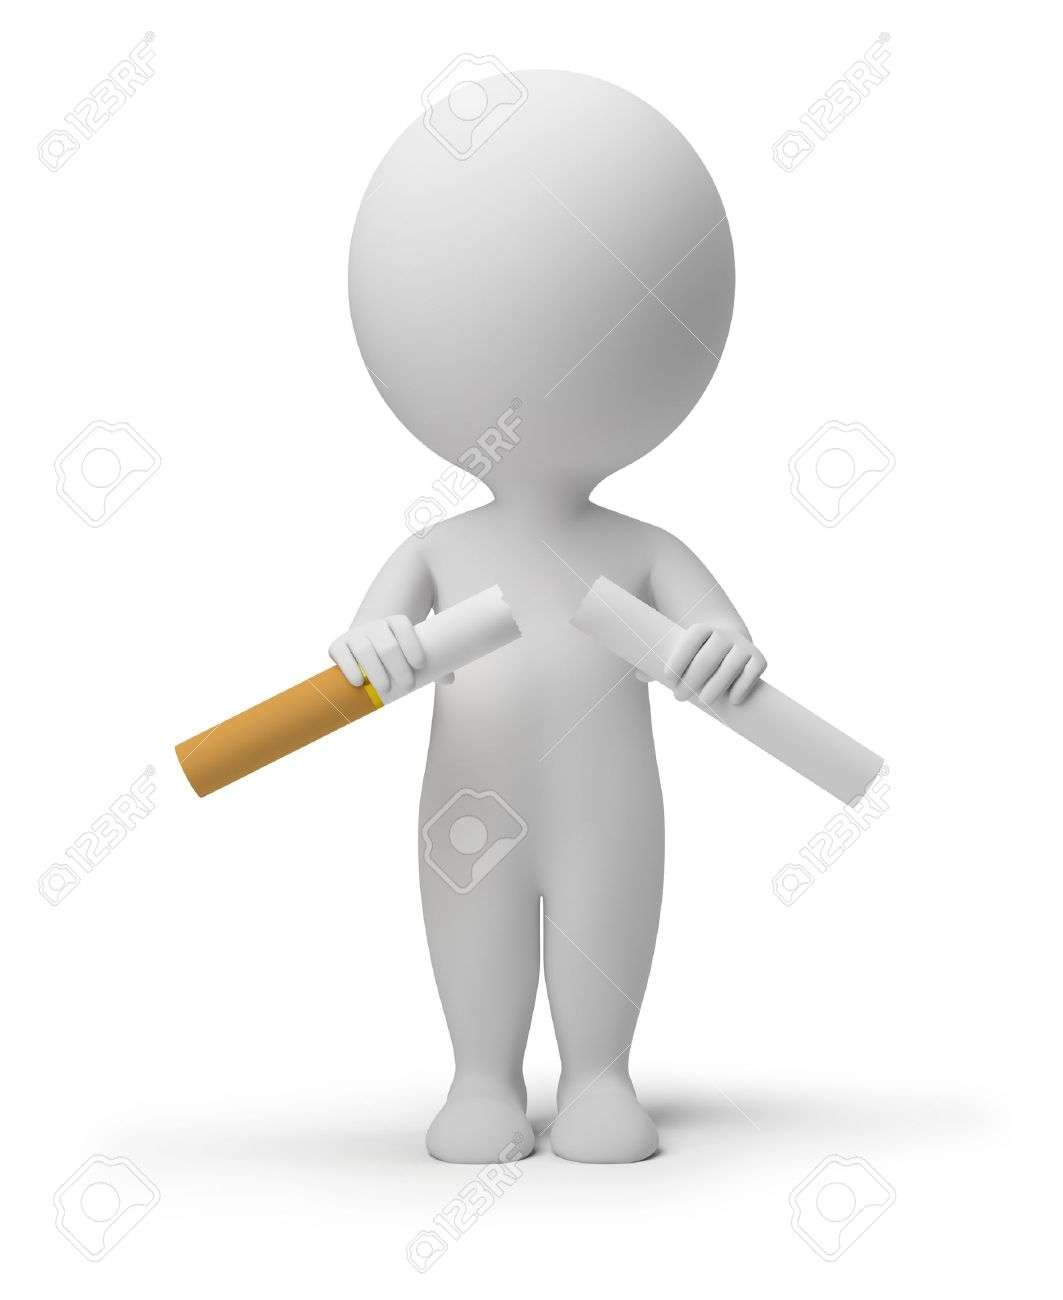 3d small person breaking a cigarette. 3d image. Isolated white background. Stock Photo - 9631601